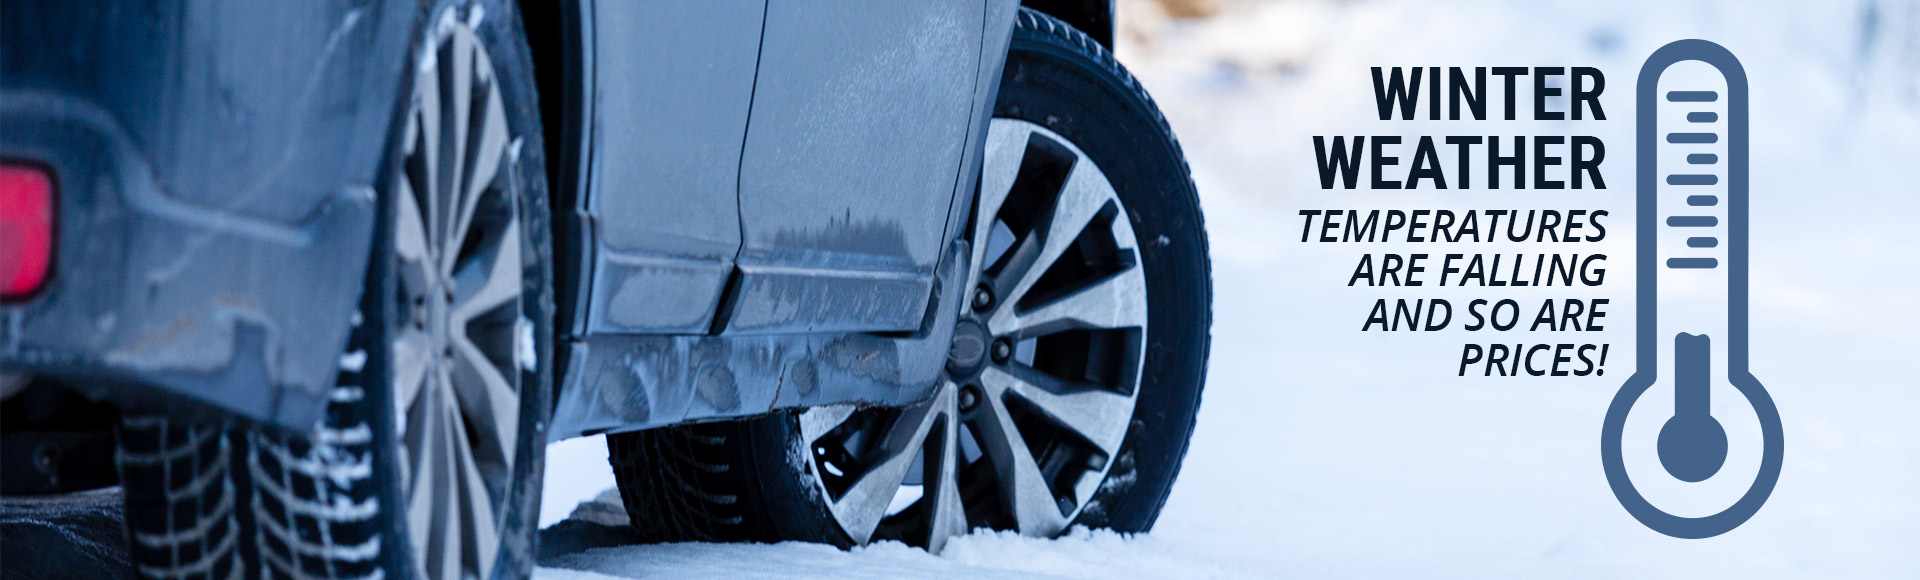 Winter Weather: Temperatures are dropping and so are prices!